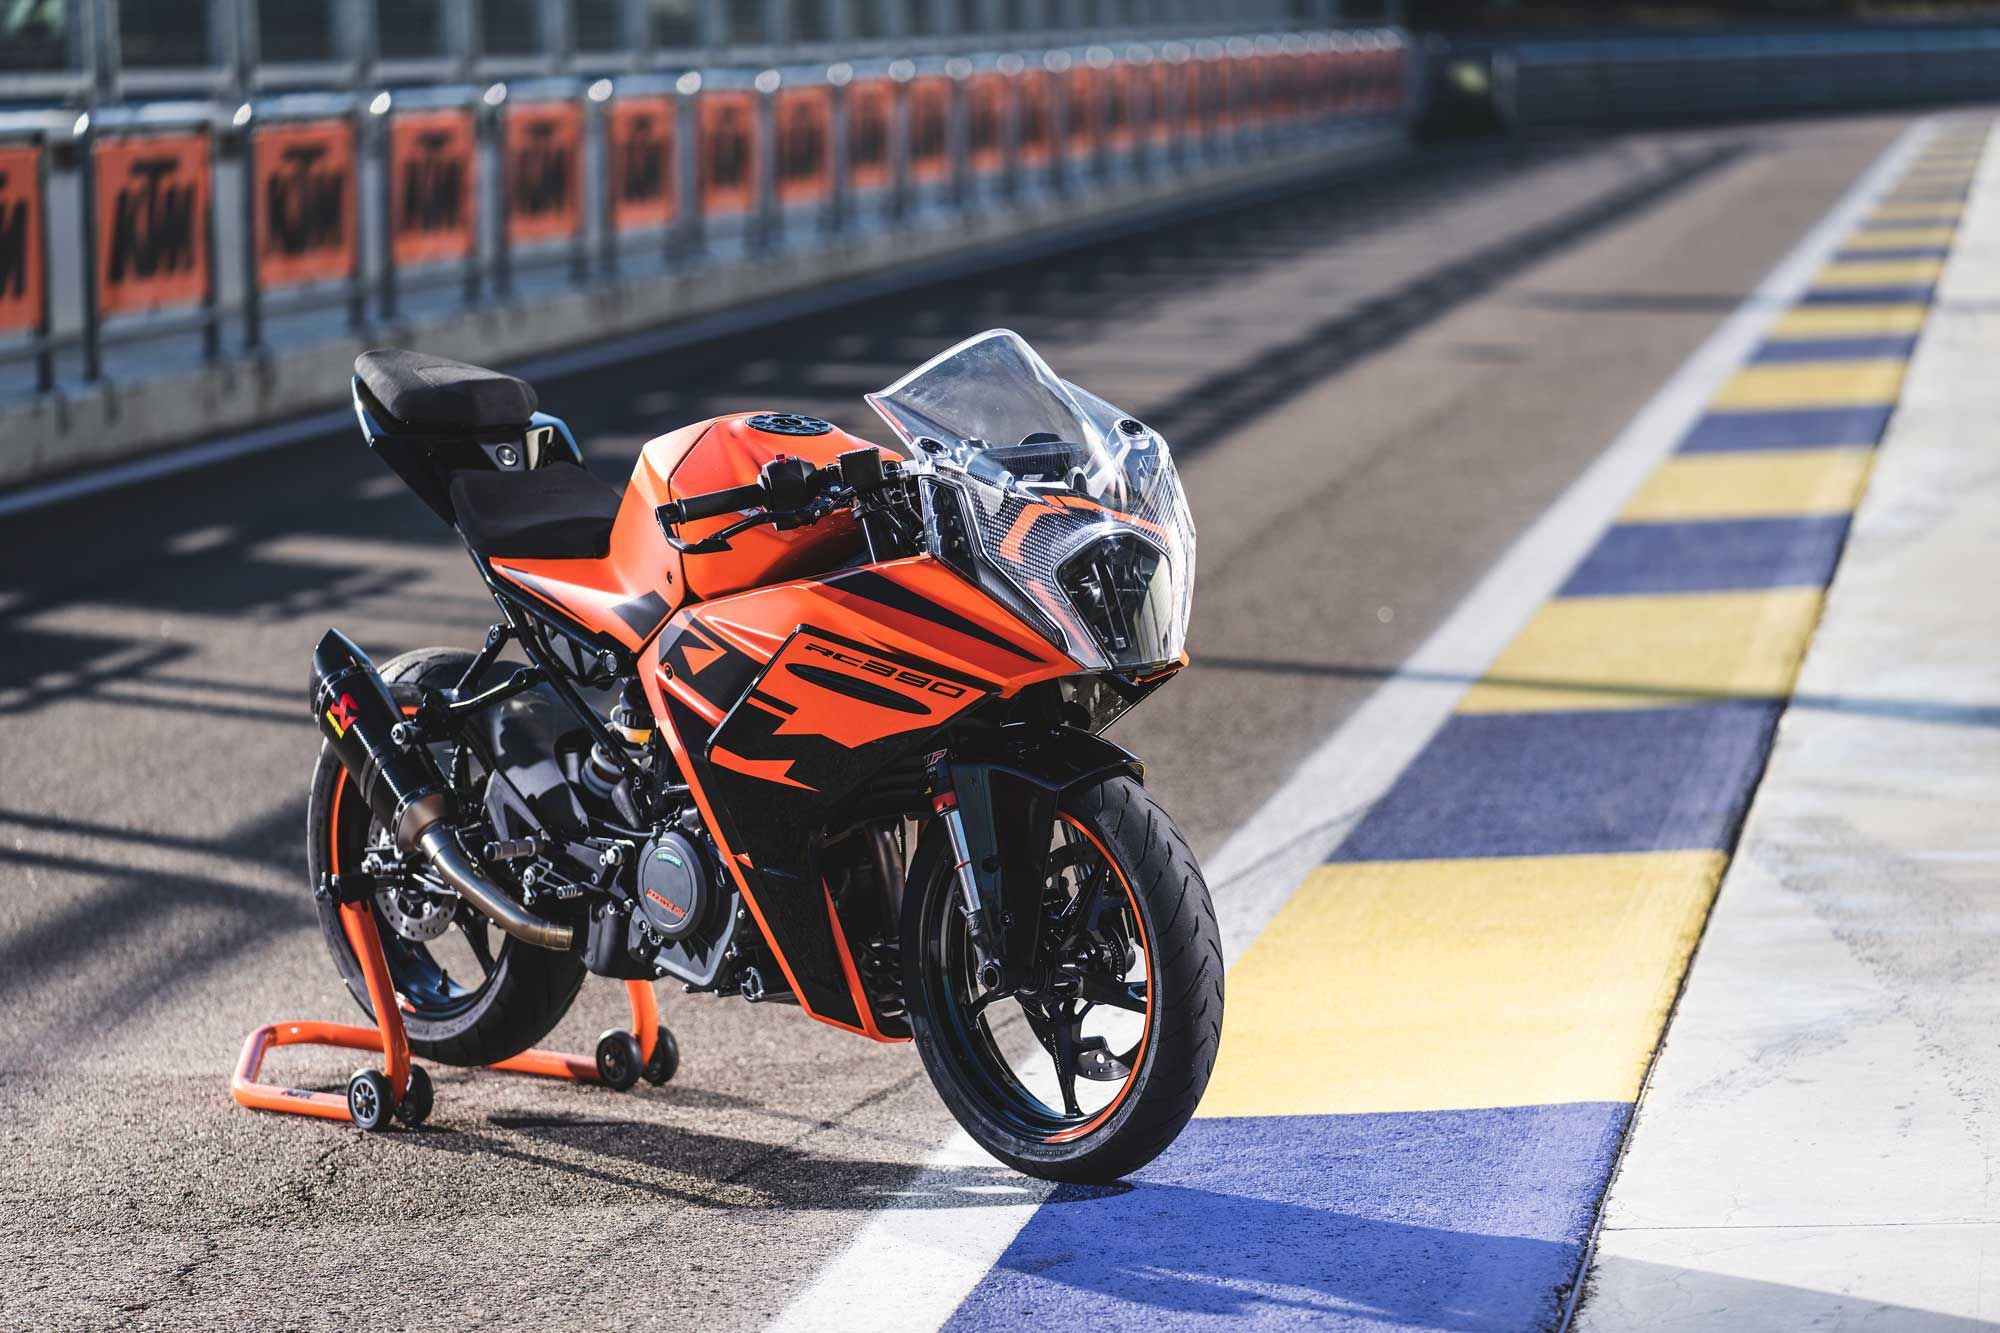 The all-new 2022 KTM RC 390 boasts significant updates to its chassis and first-in-class electronic rider aids, boosting its performance on the road and track.